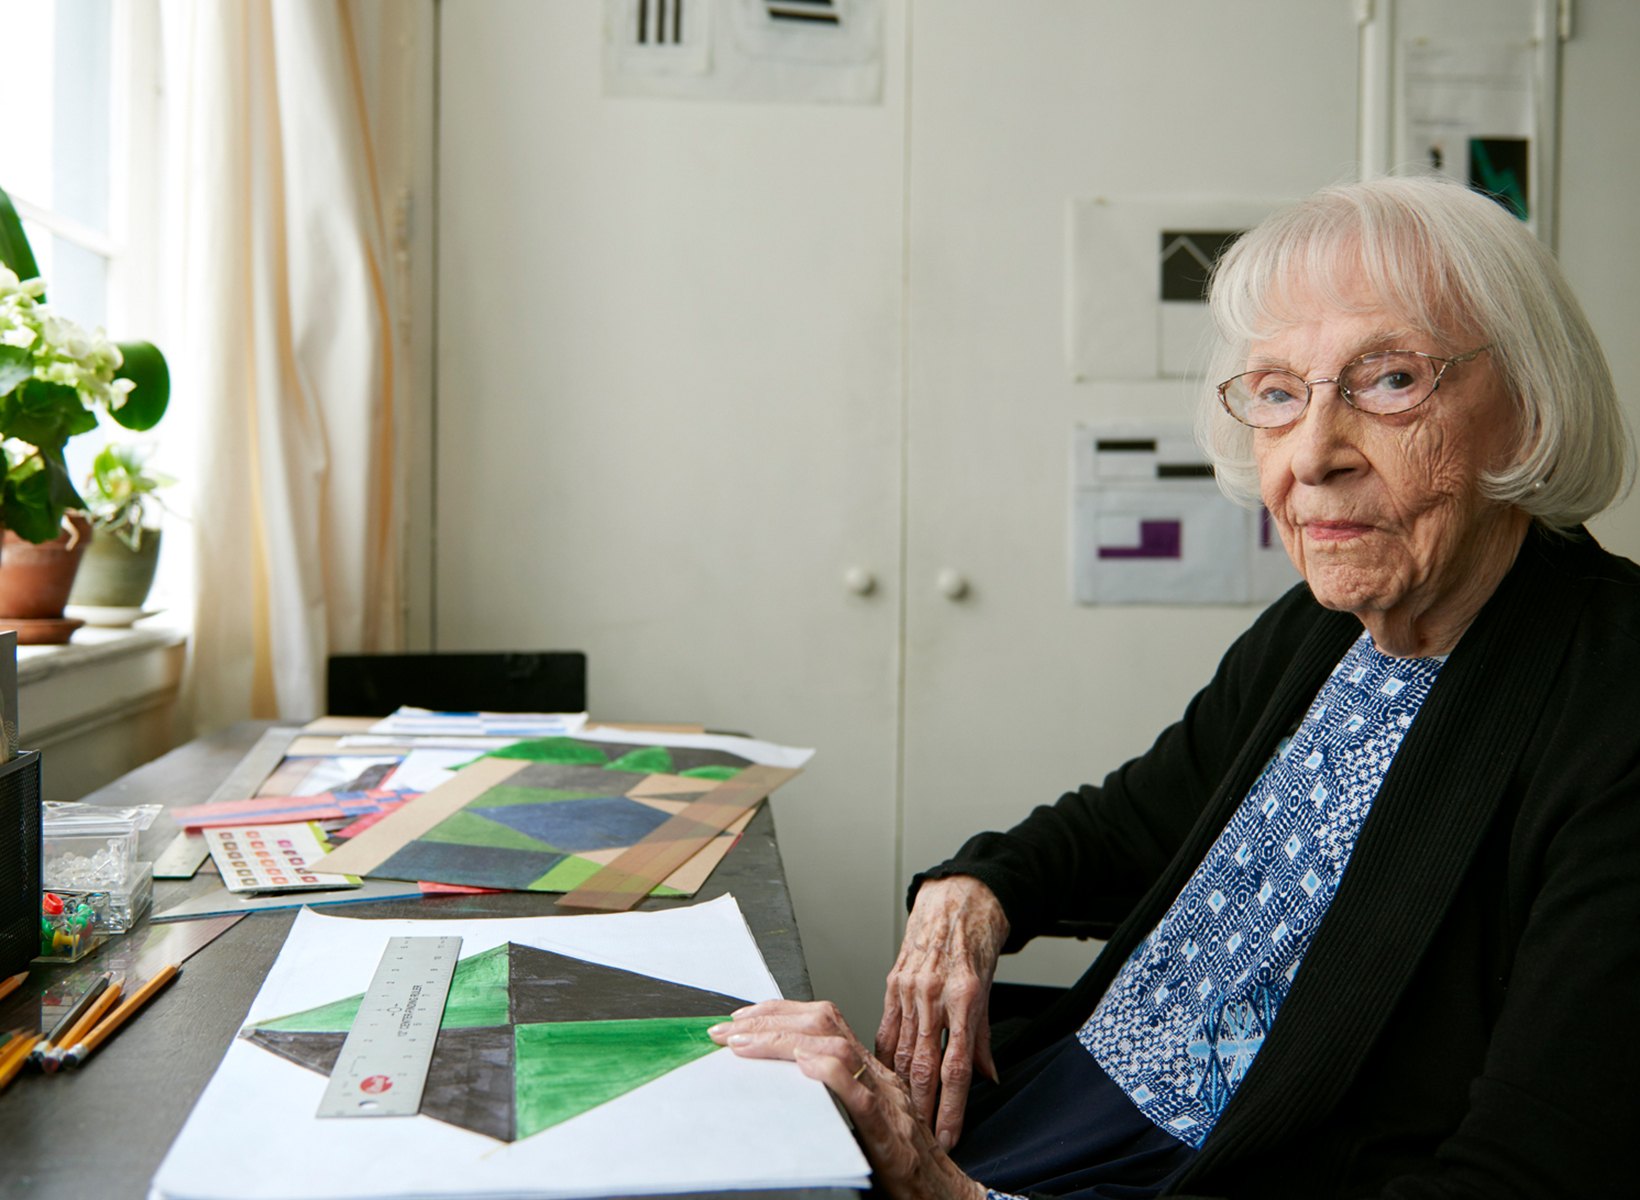 Carmen Herrera photographed in her New York studio. Image courtesy of Herrera.